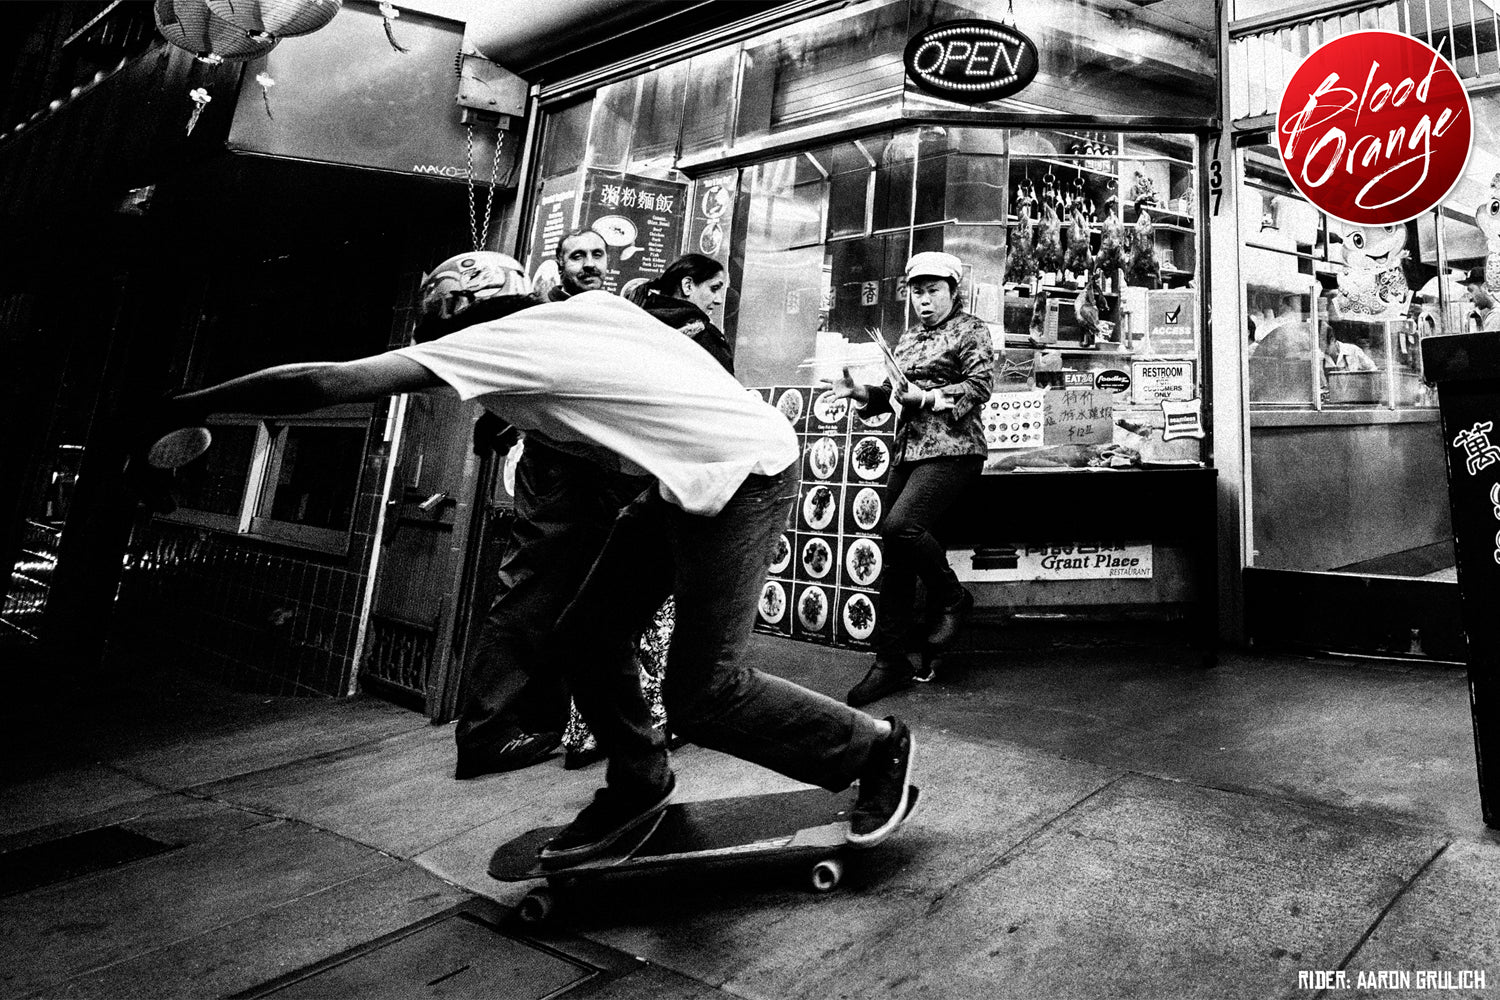 stoked-ride-shop-behind-the-brand-skate-blood-orange